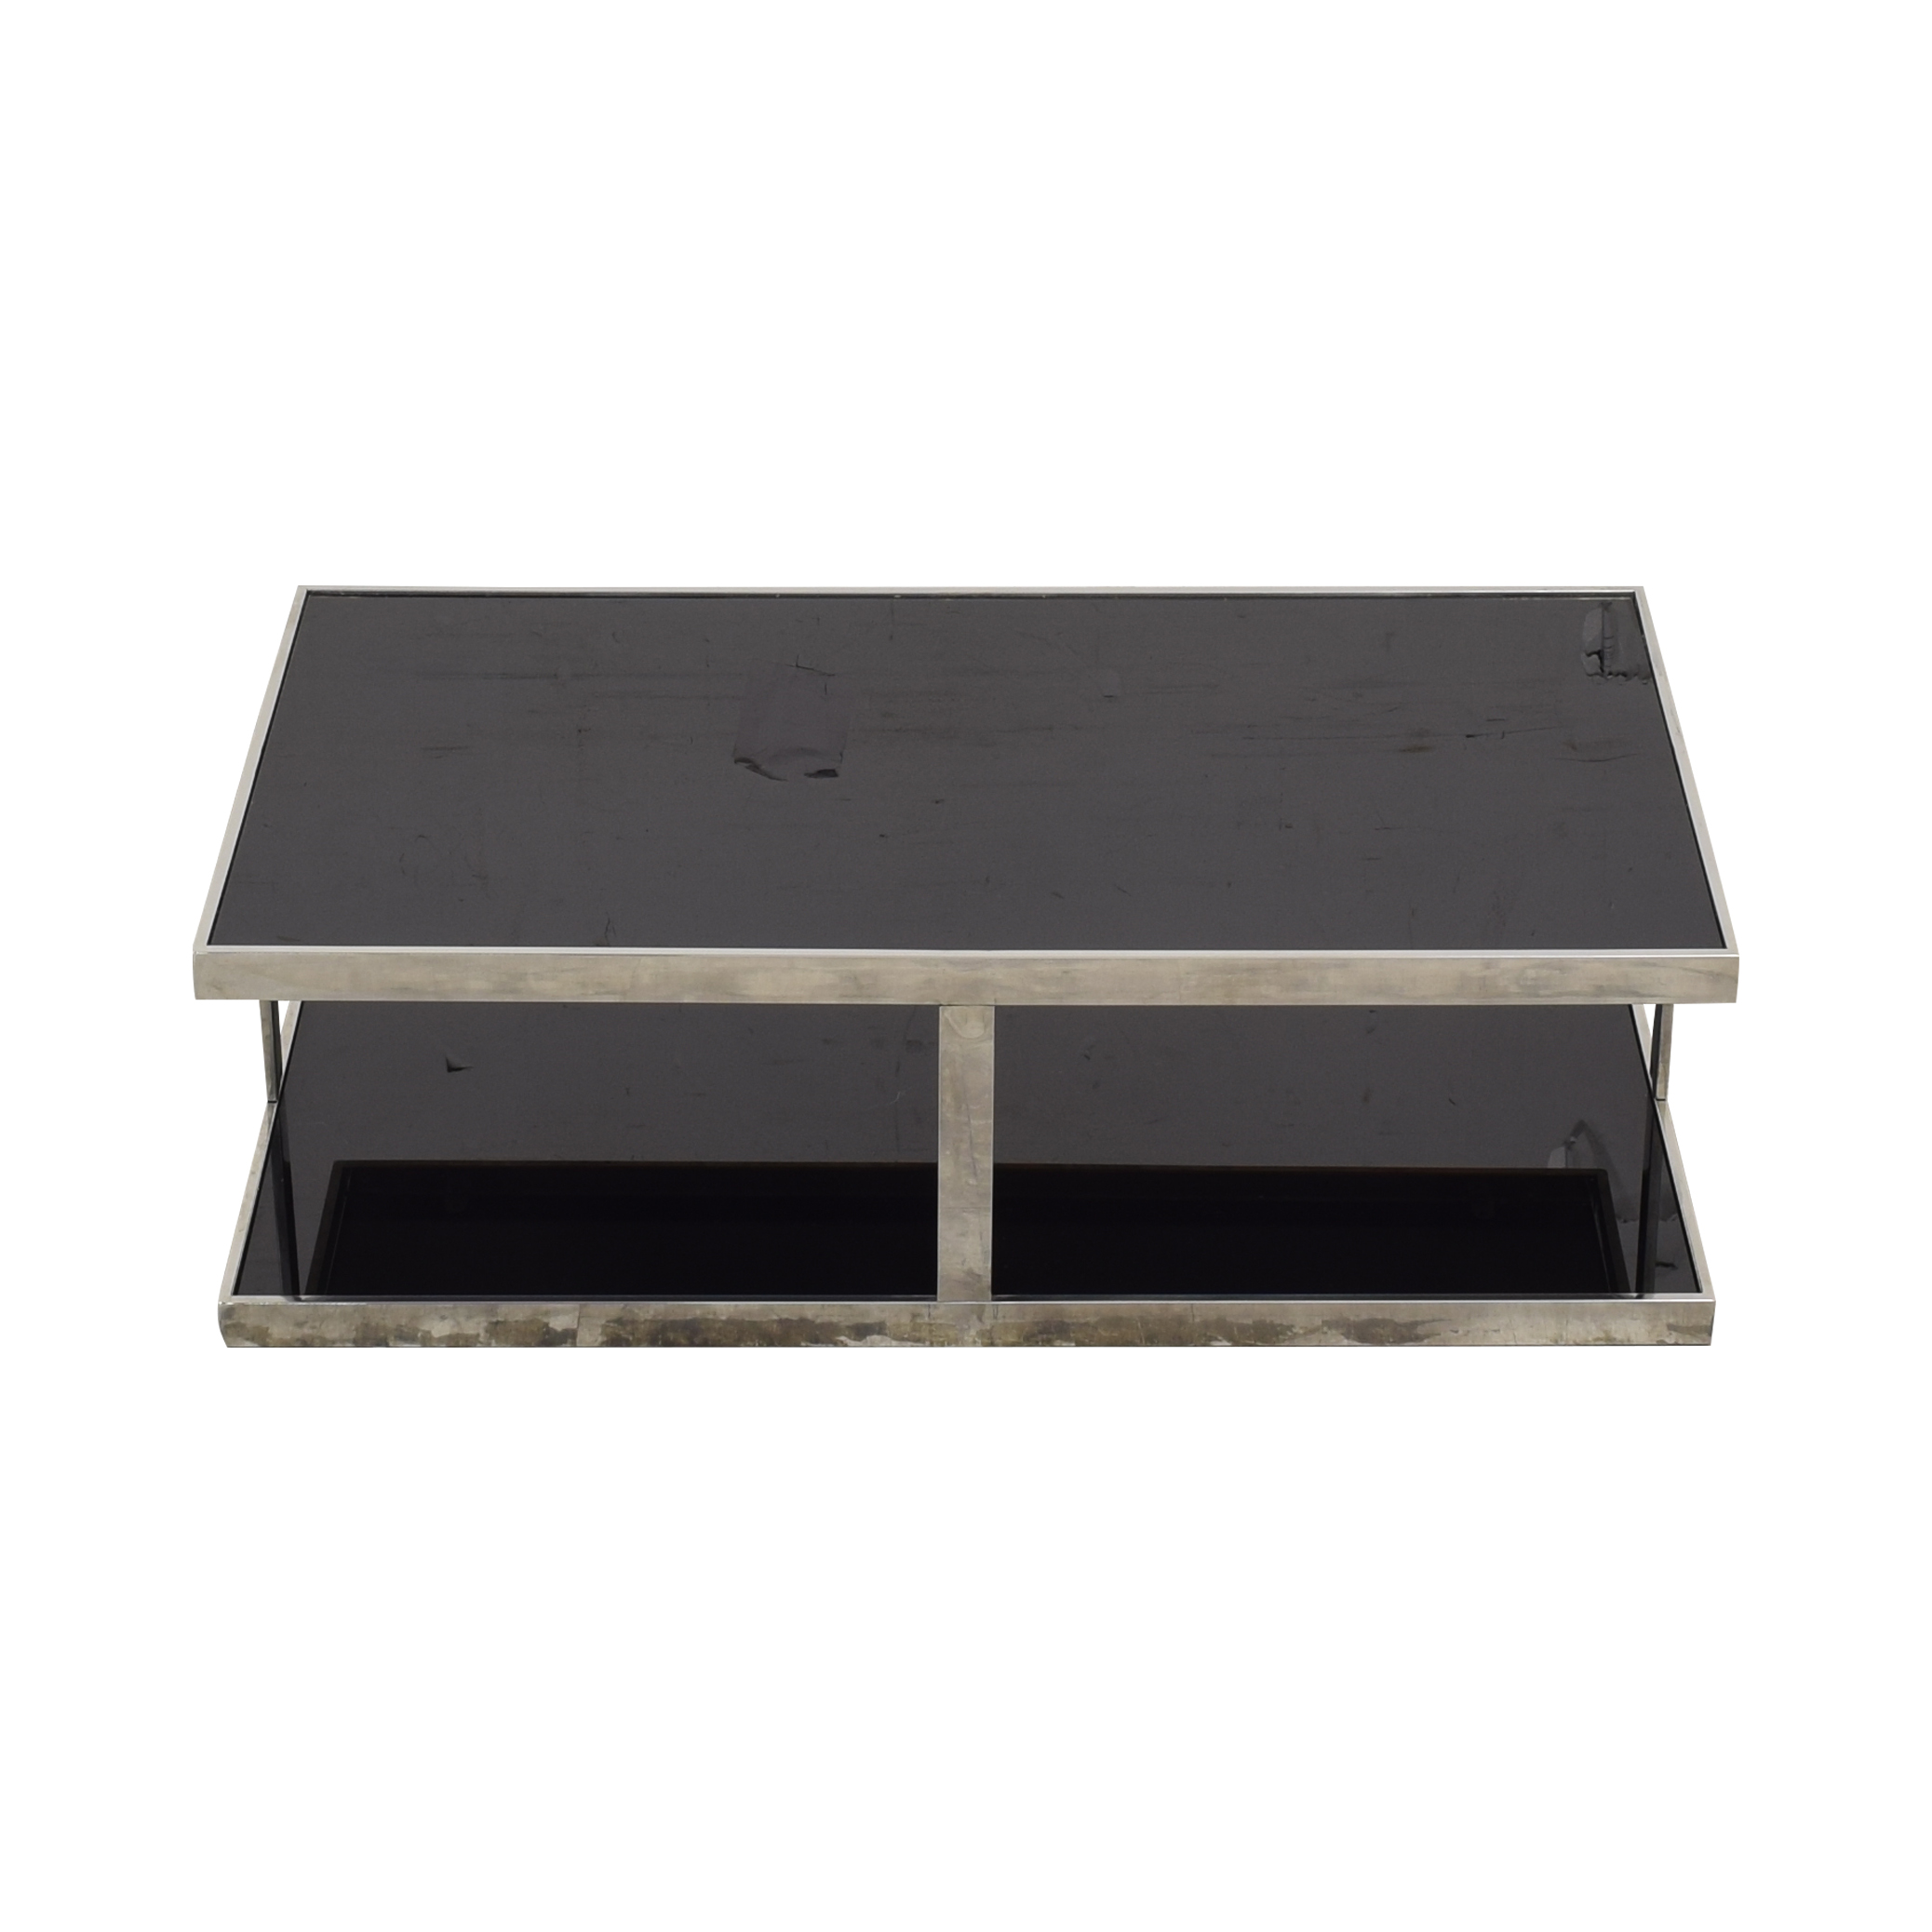 Modway Modway Furniture Absorb Black Coffee Table for sale